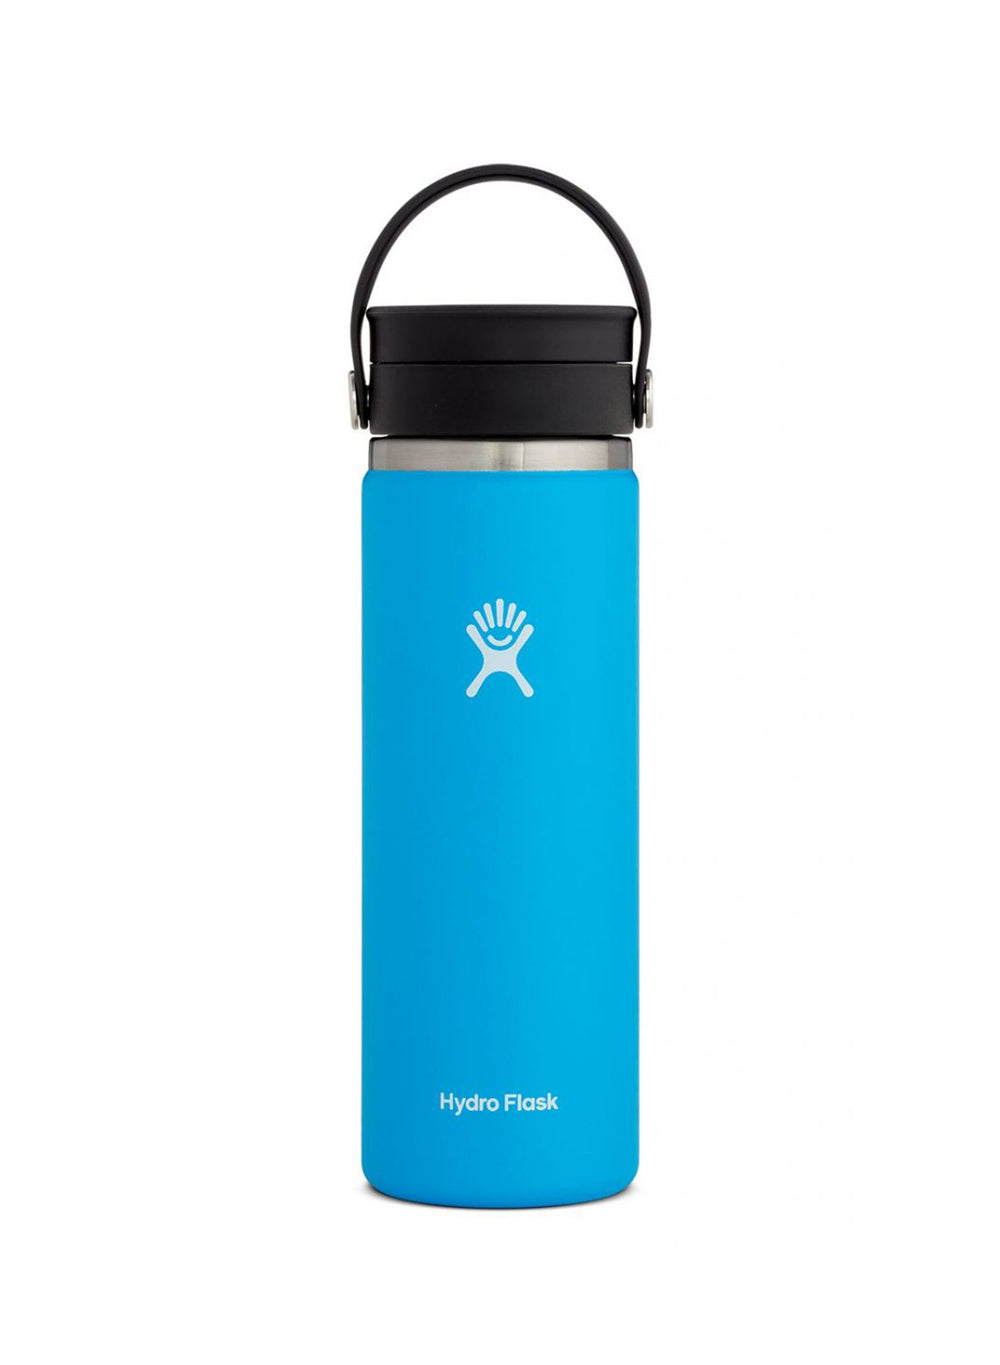 Hydro Flask 20 oz Wide Mouth with Flex Sip Lid